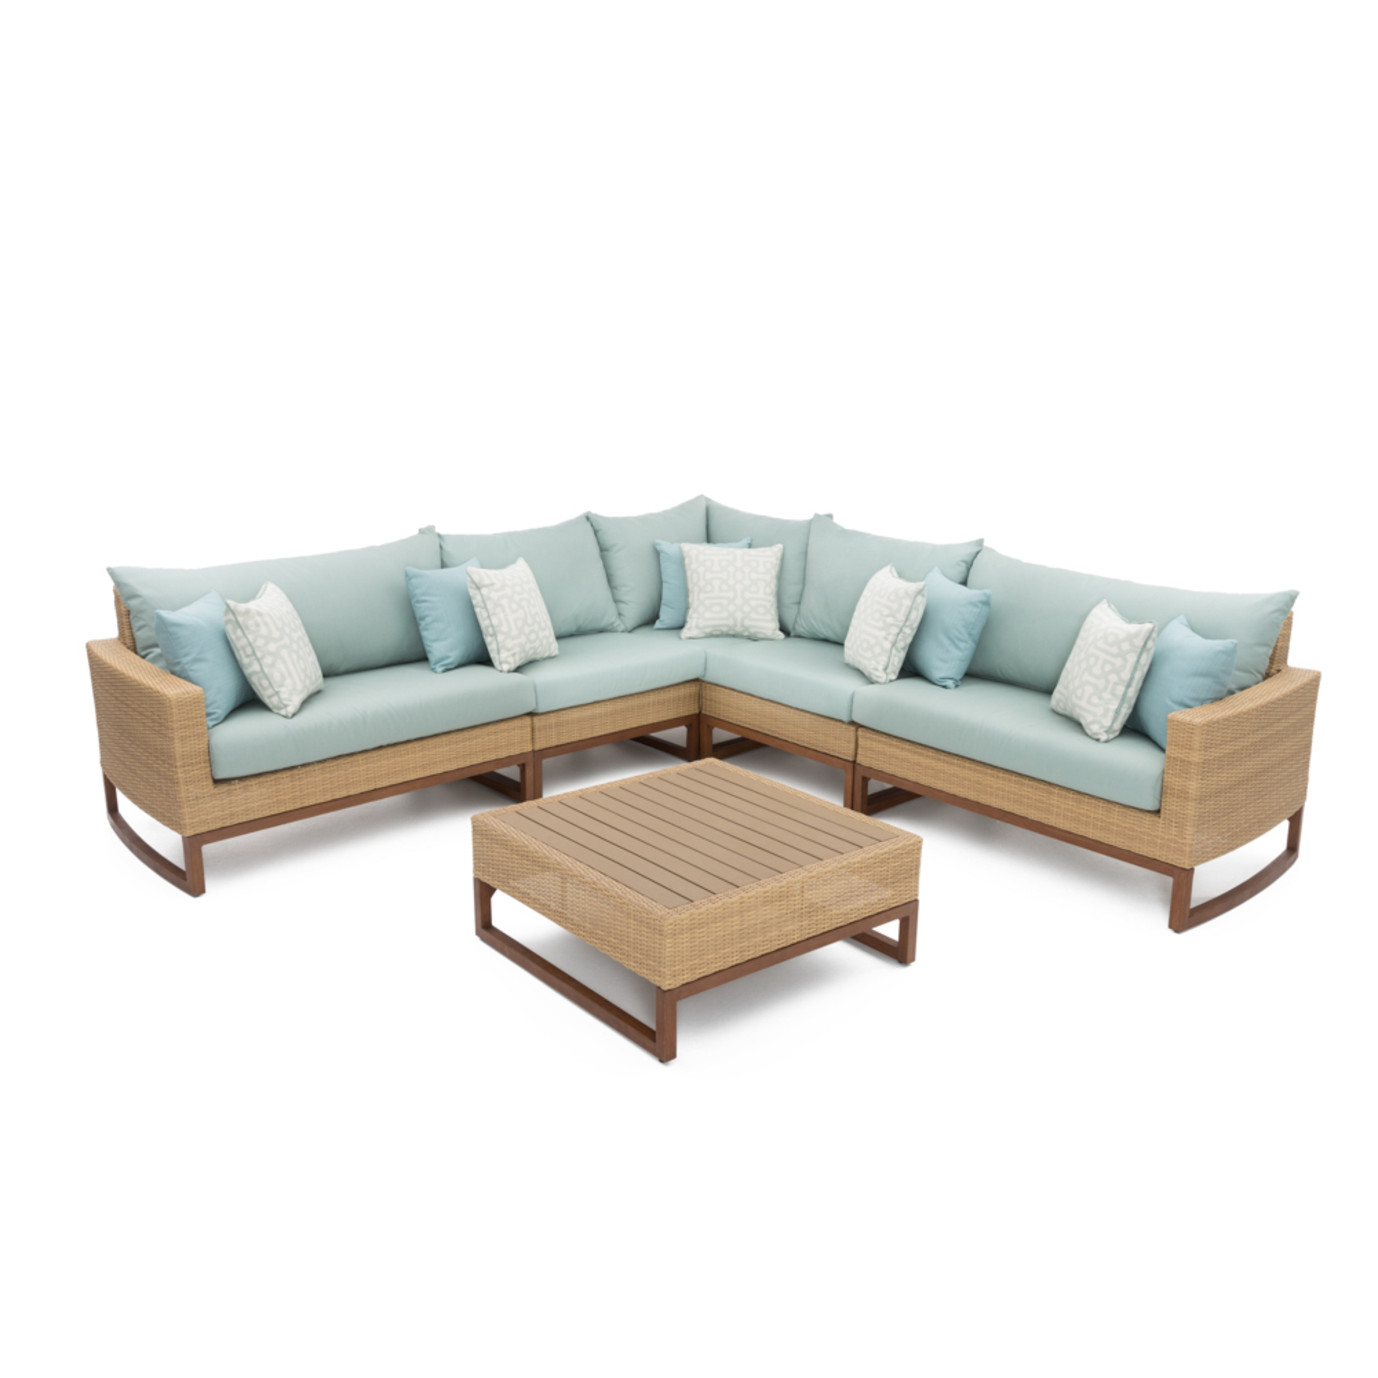 Mili™ 6 Piece Sofa Sectional - Spa Blue